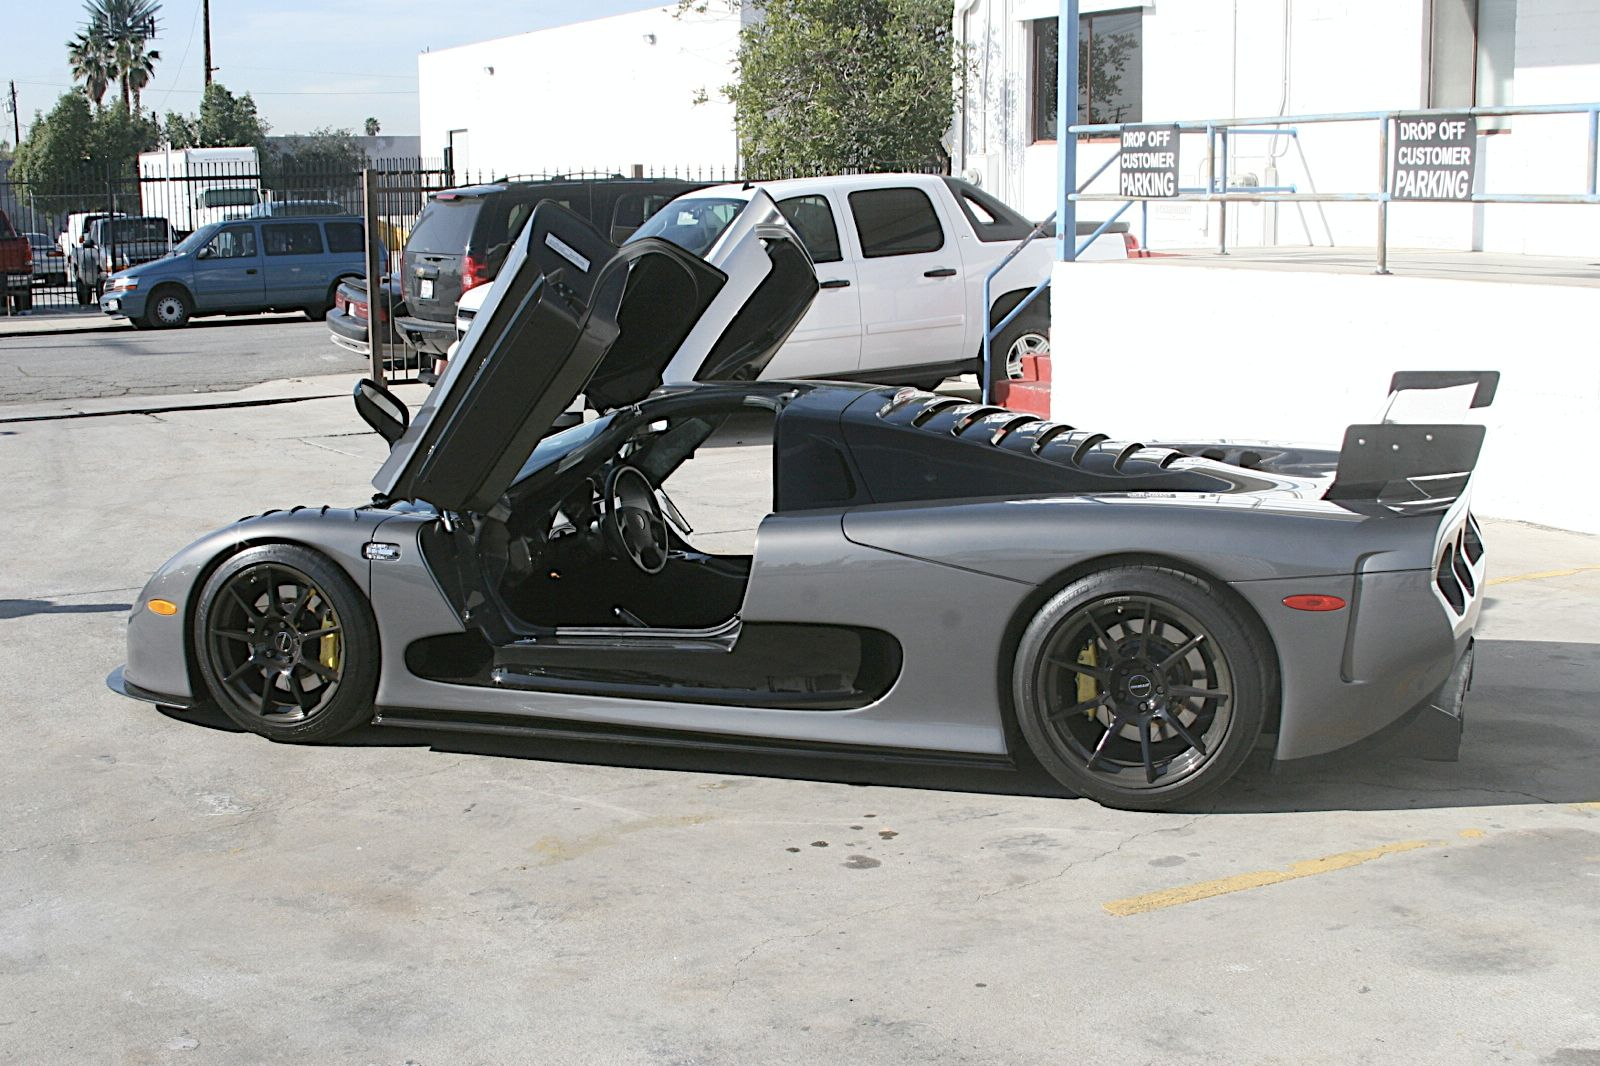 Mosler Mt900 Gtr Xx New Edition It Is A Land Shark With HD Wallpapers Download free images and photos [musssic.tk]